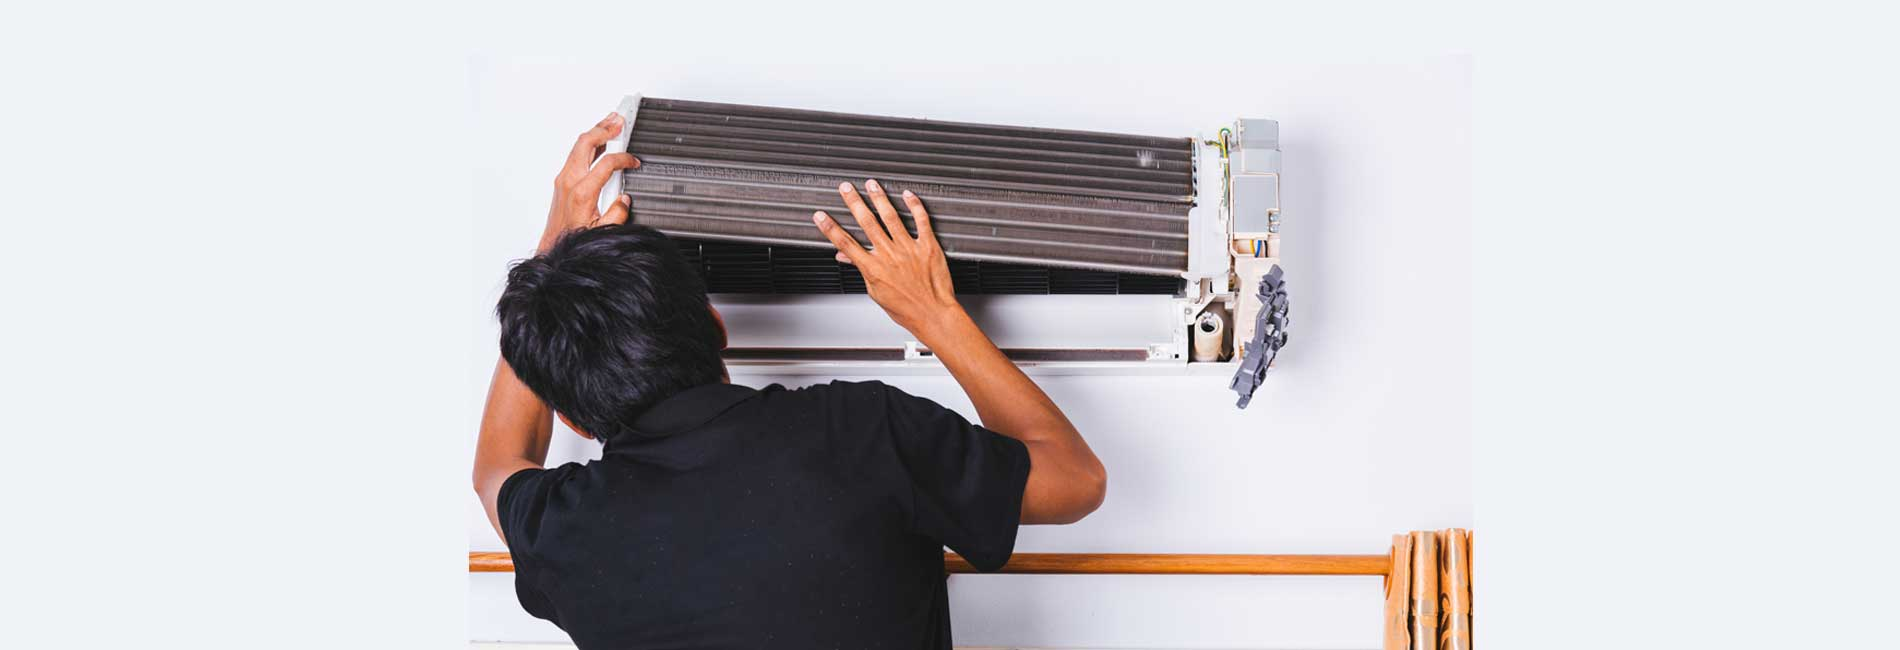 AC Uninstallation in Anna Nagar West Extension